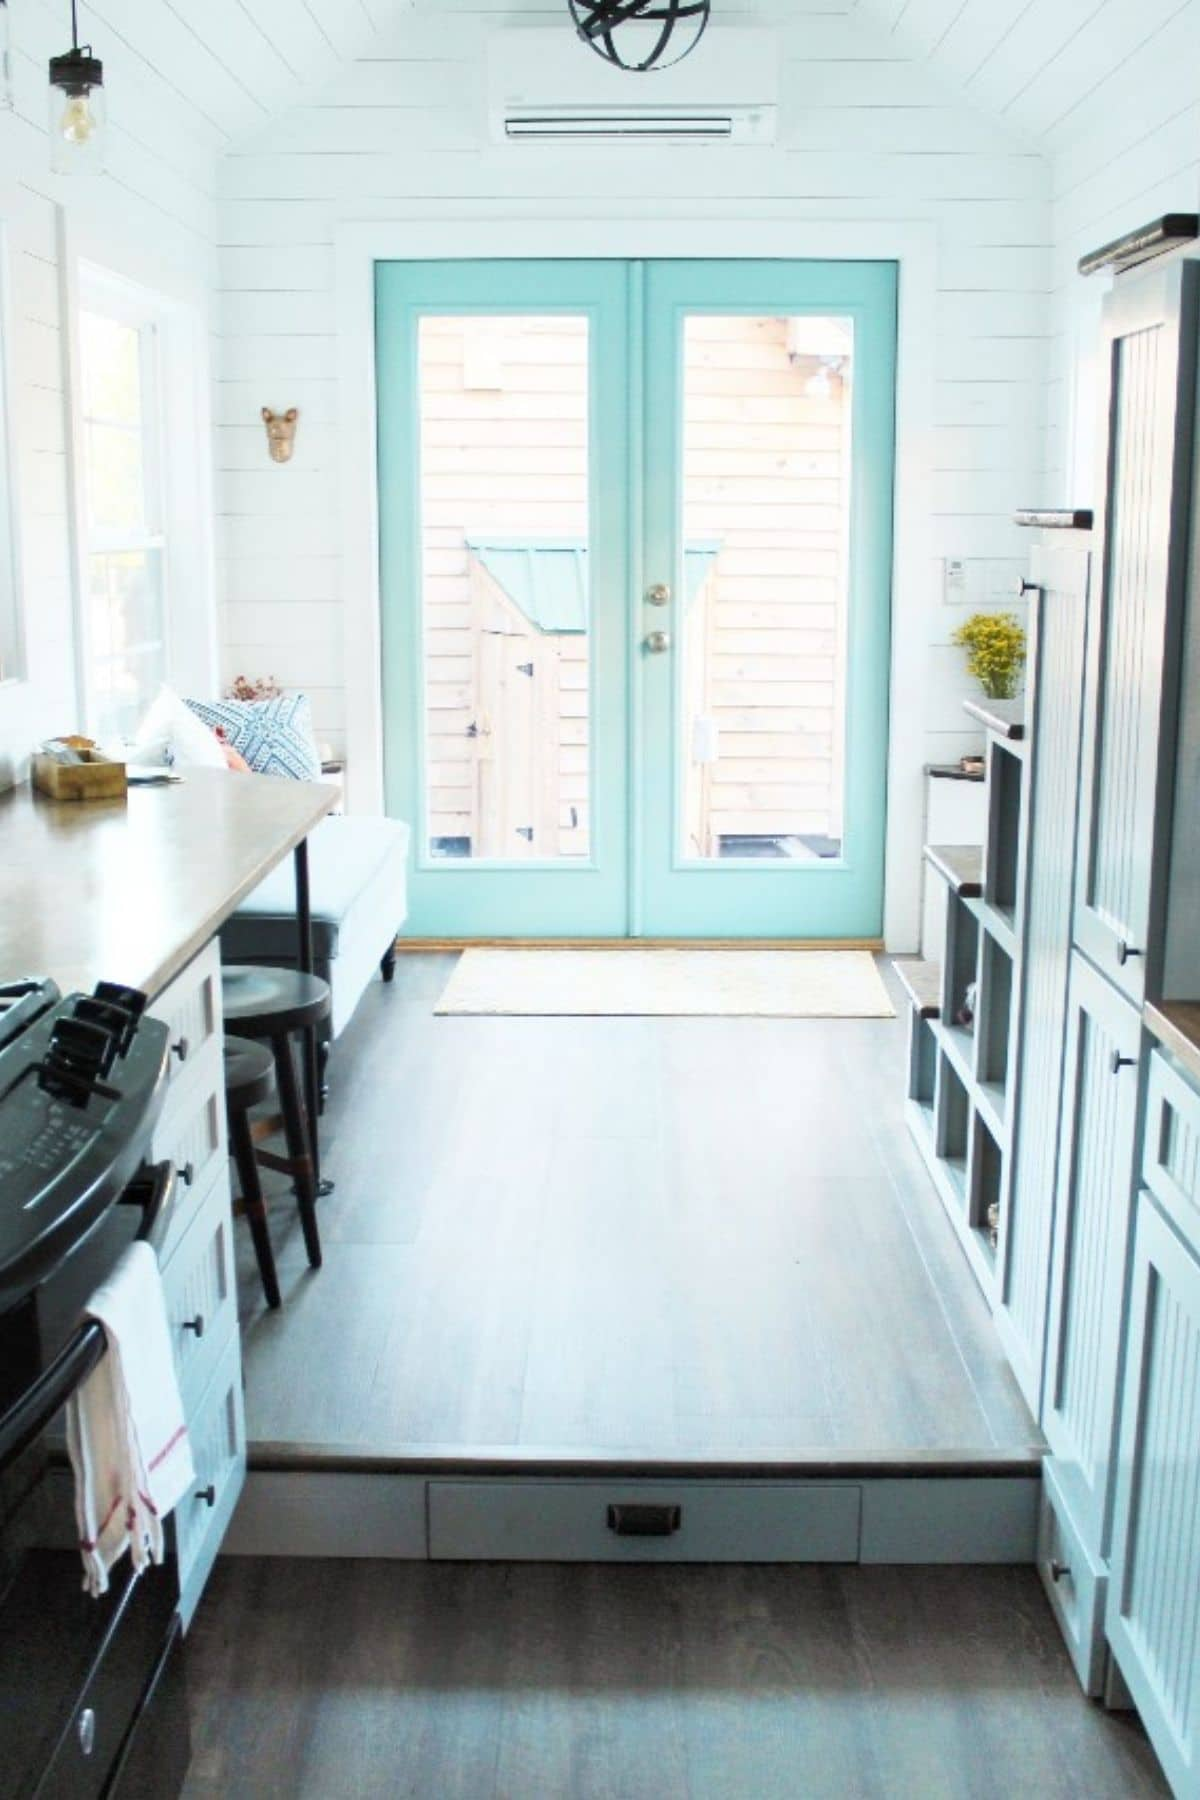 View of teal french doors from inside tiny home